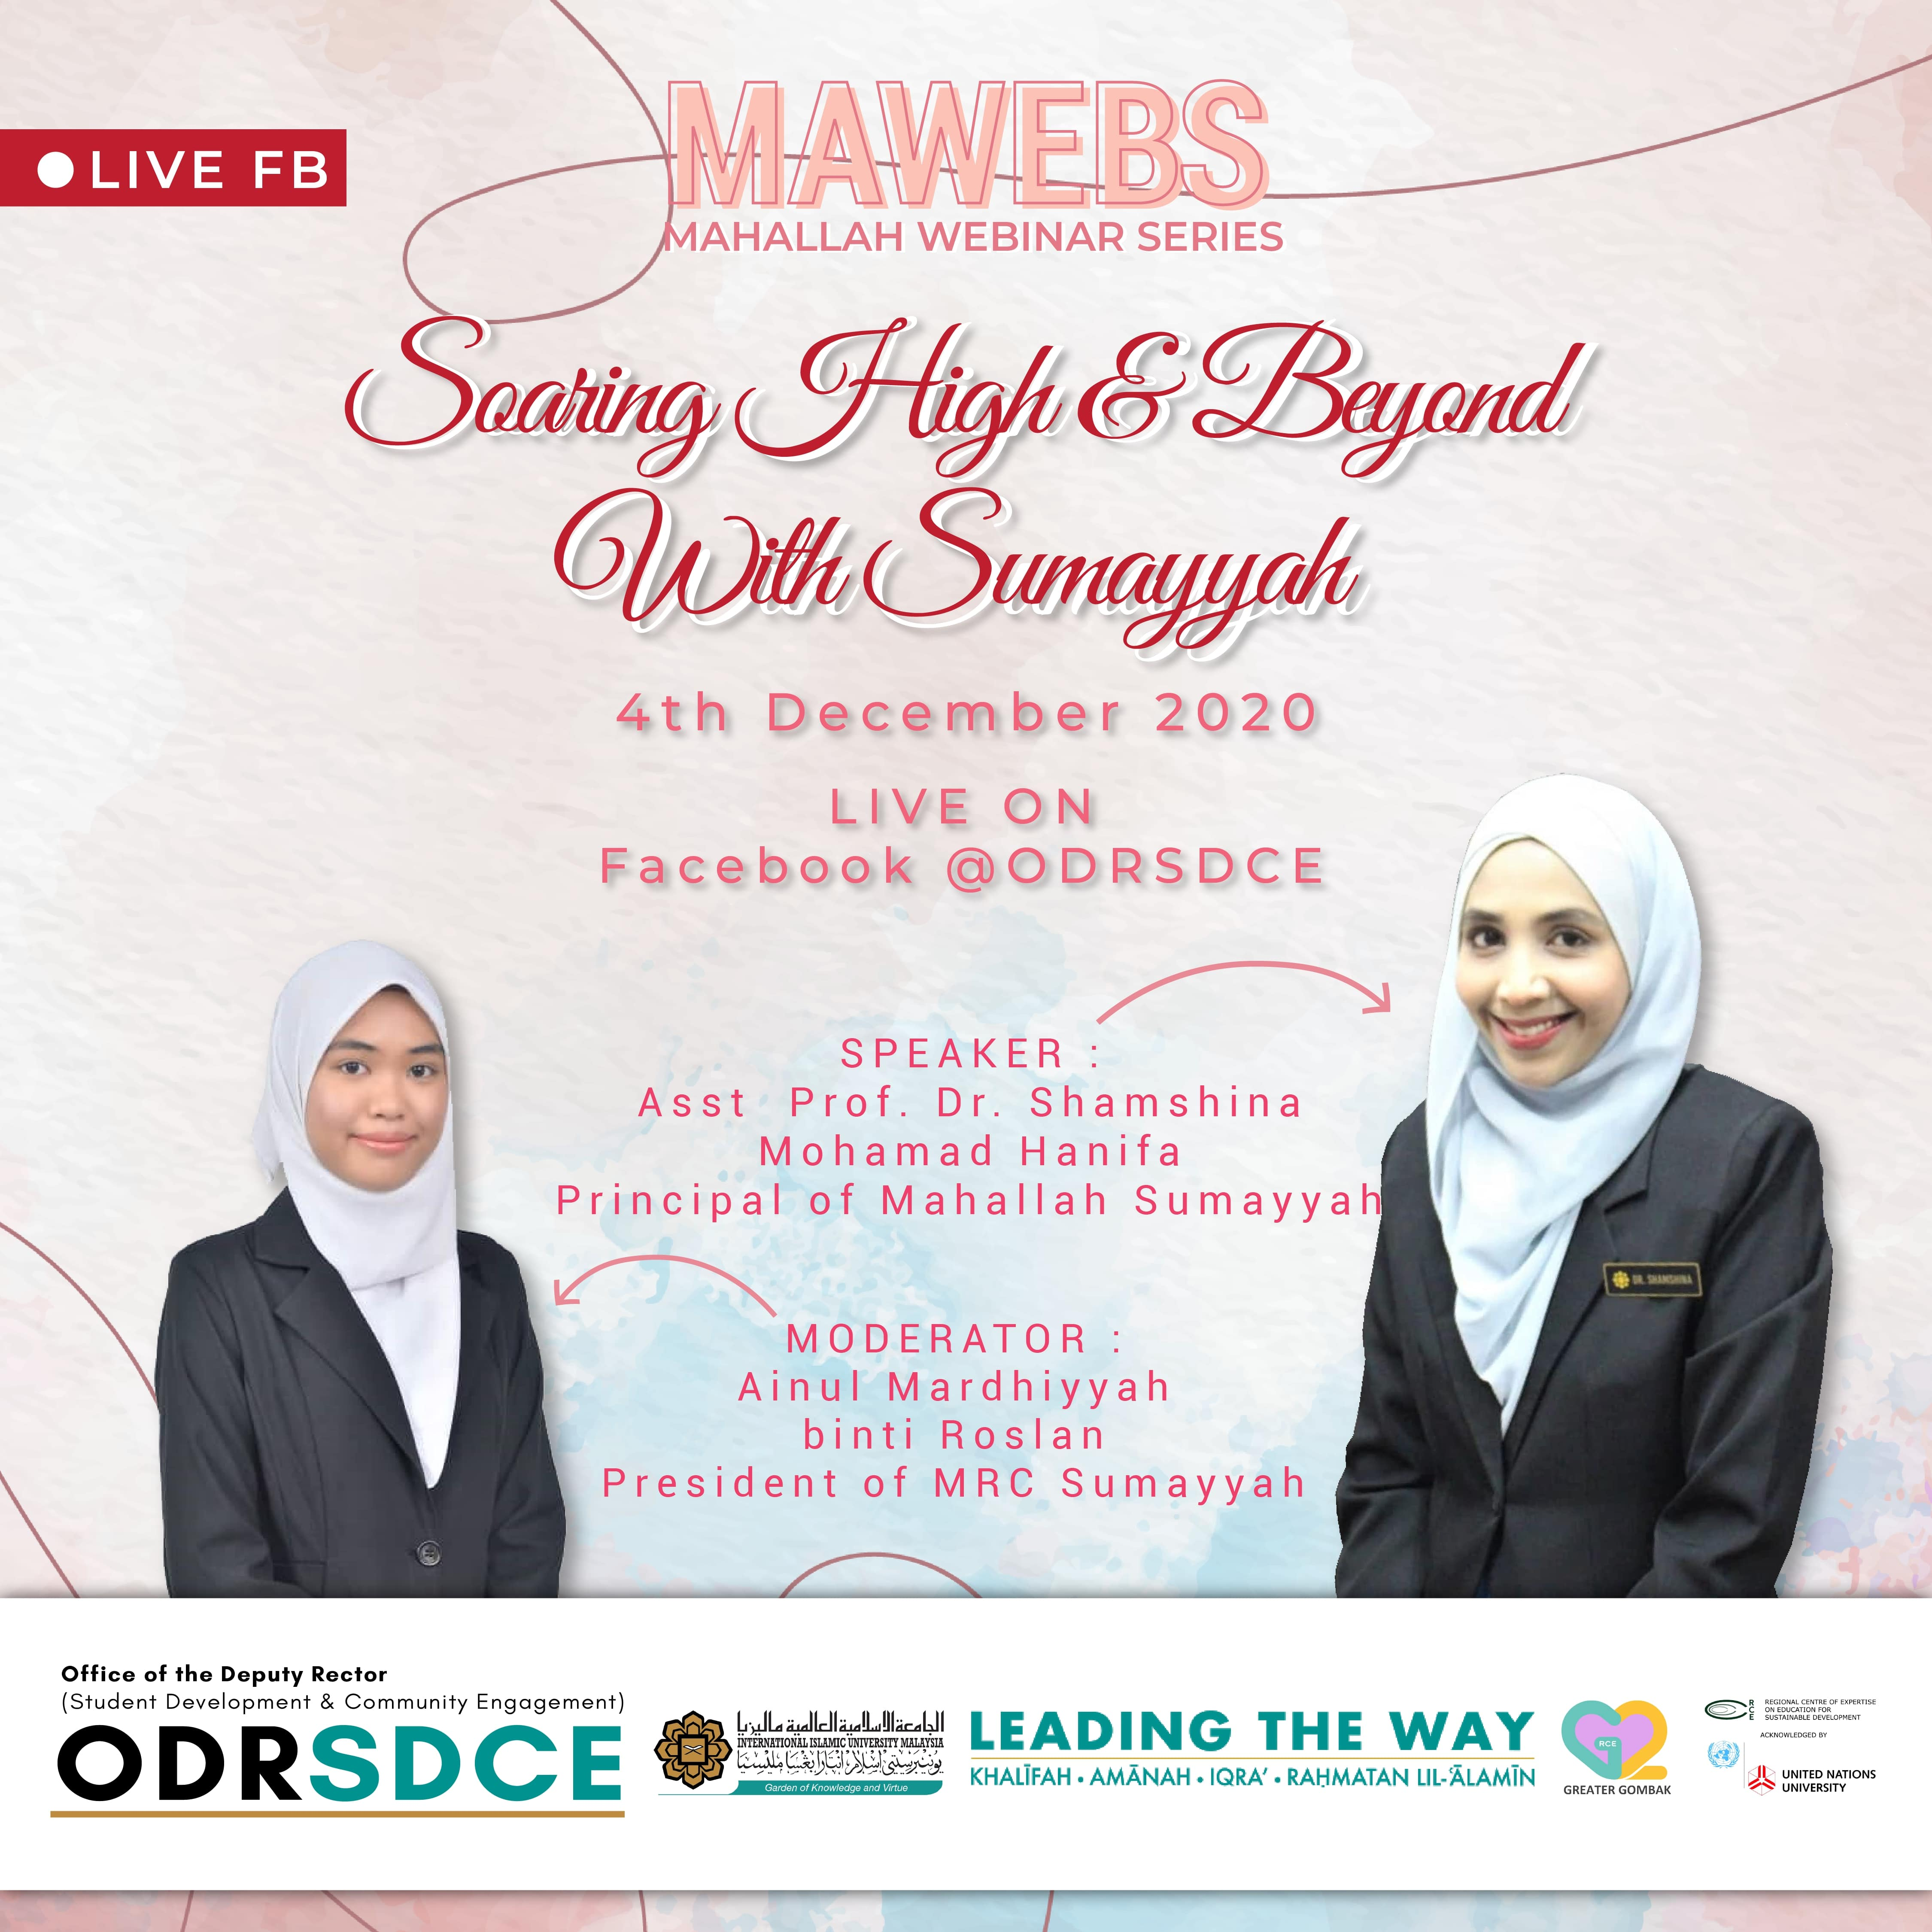 INVITATION TO PARTICIPATE IN MAHALLAH WEBINAR SERIES (MAWEBS) - SOARING HIGH AND BEYOND WITH SUMAYYAH